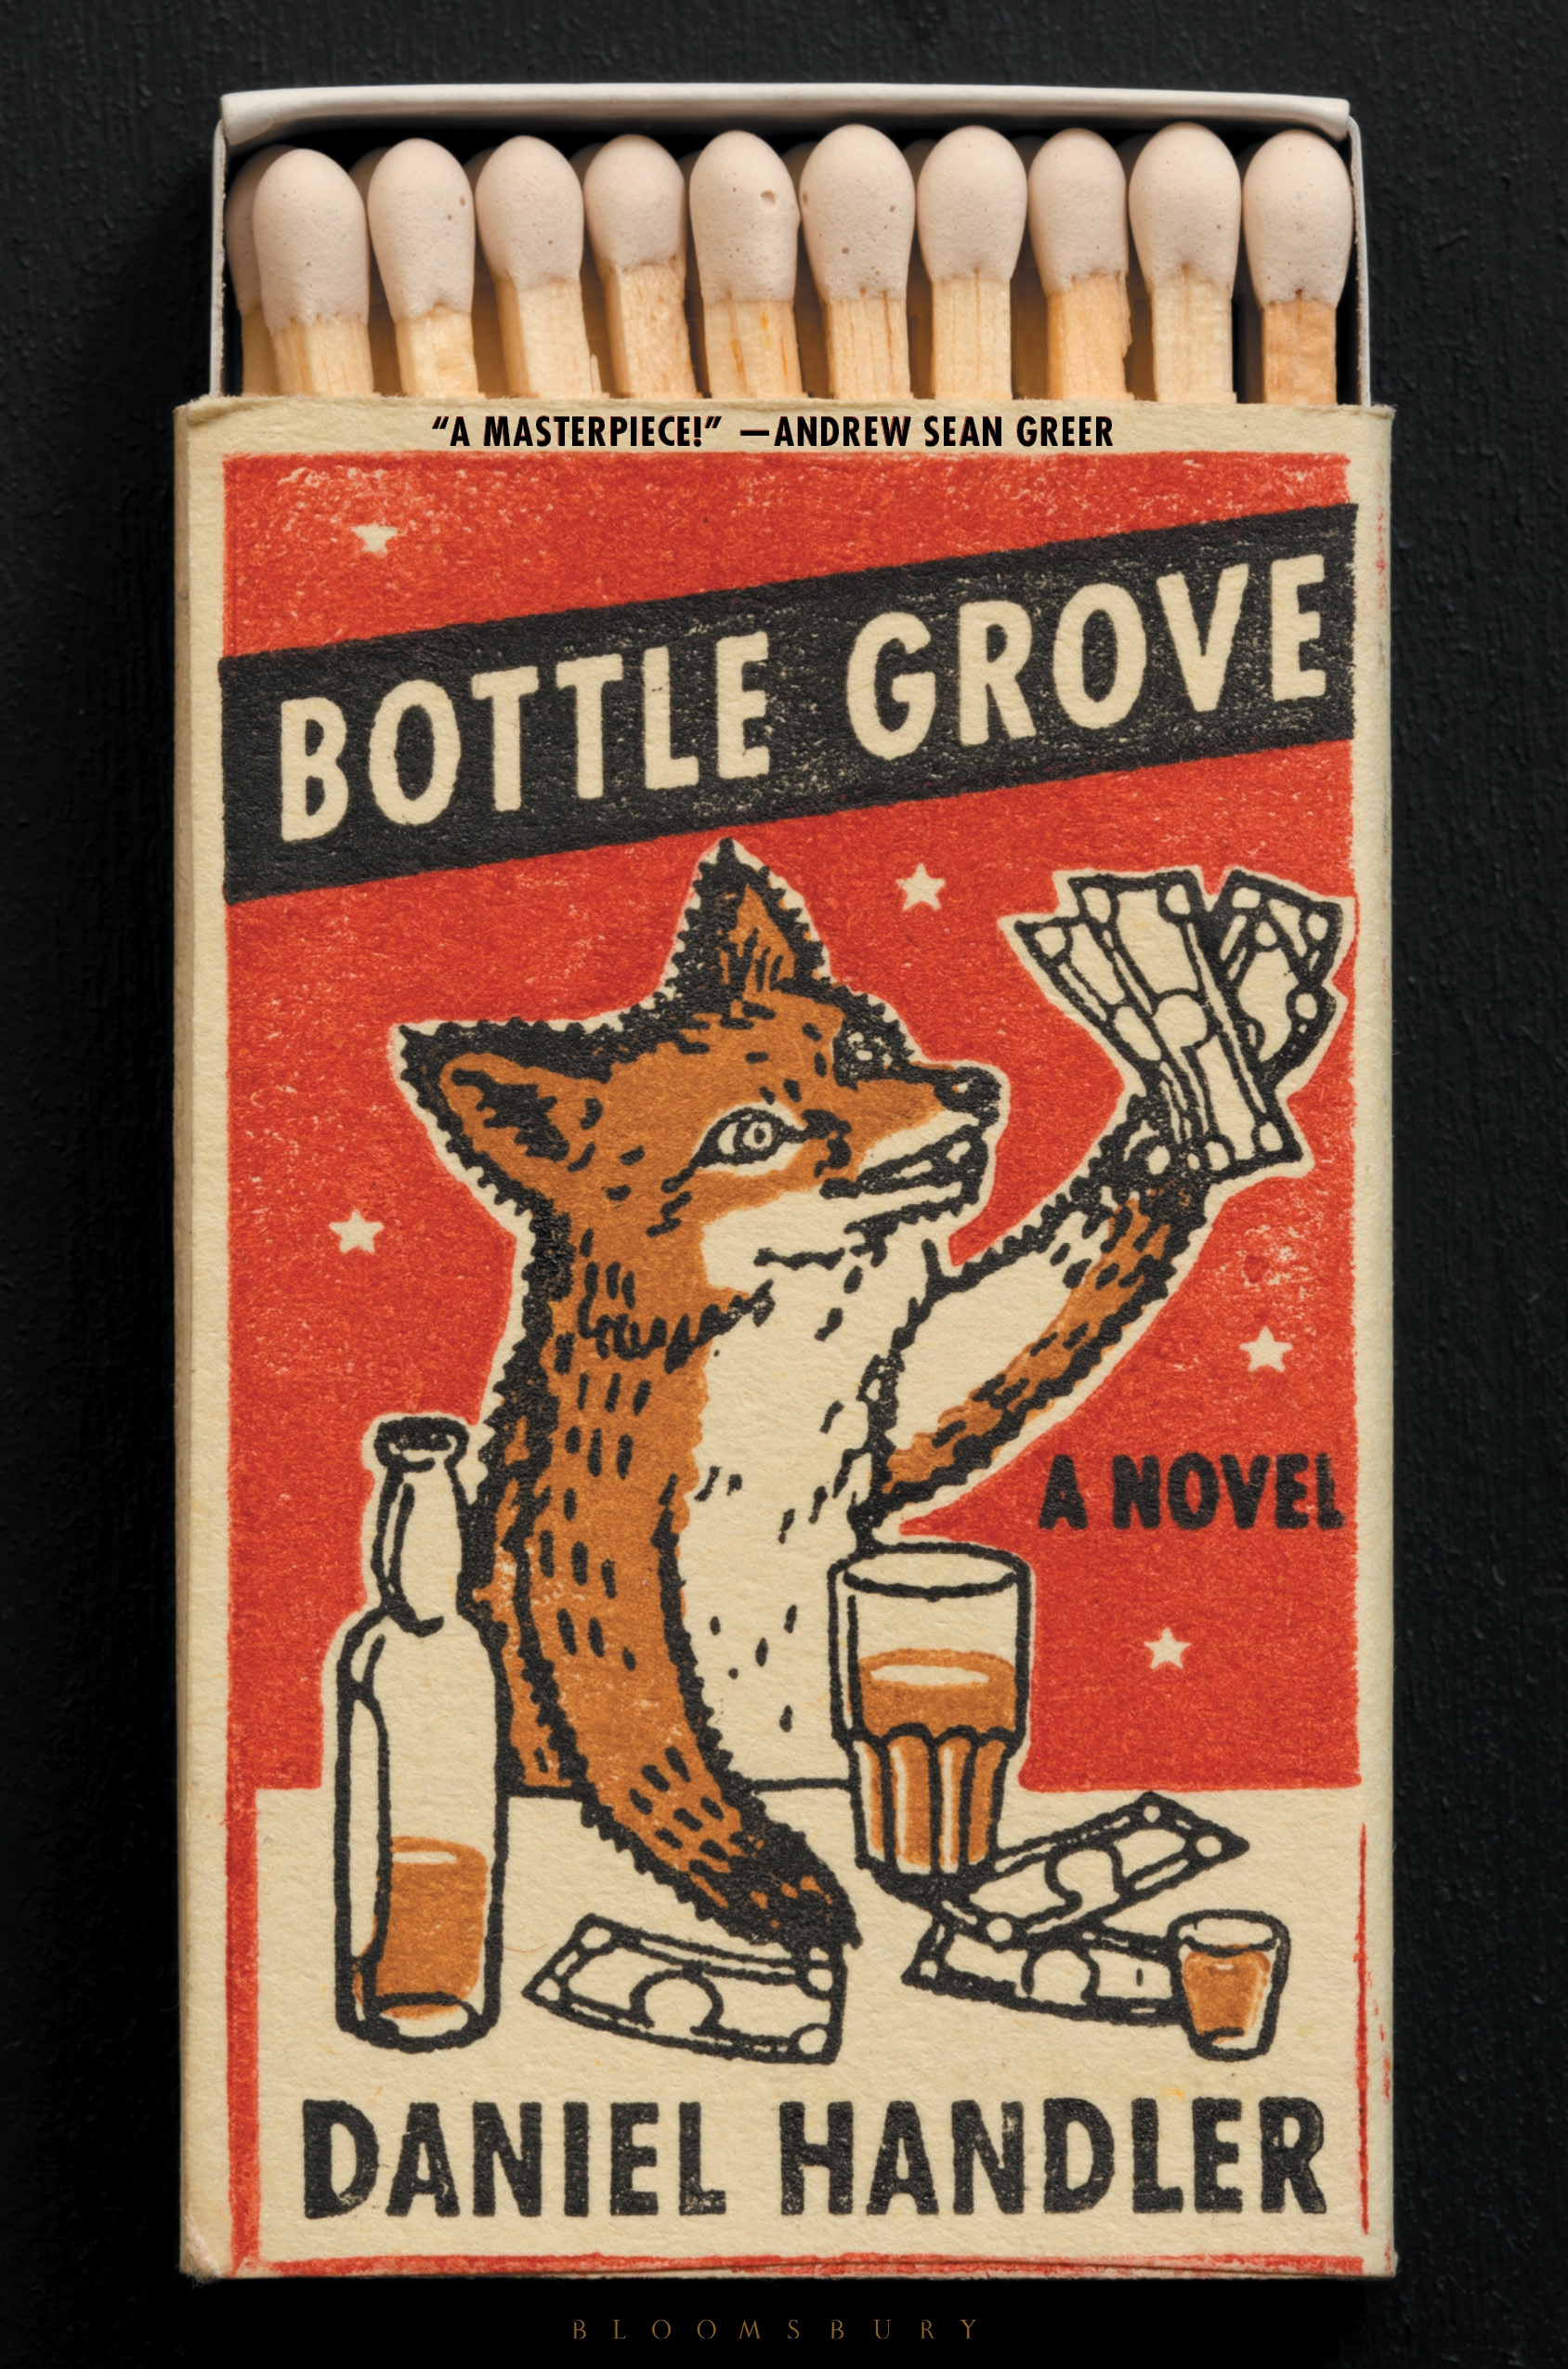 Book Launch: Bottle Grove by Daniel Handler in conversation with Chelsea Hodson